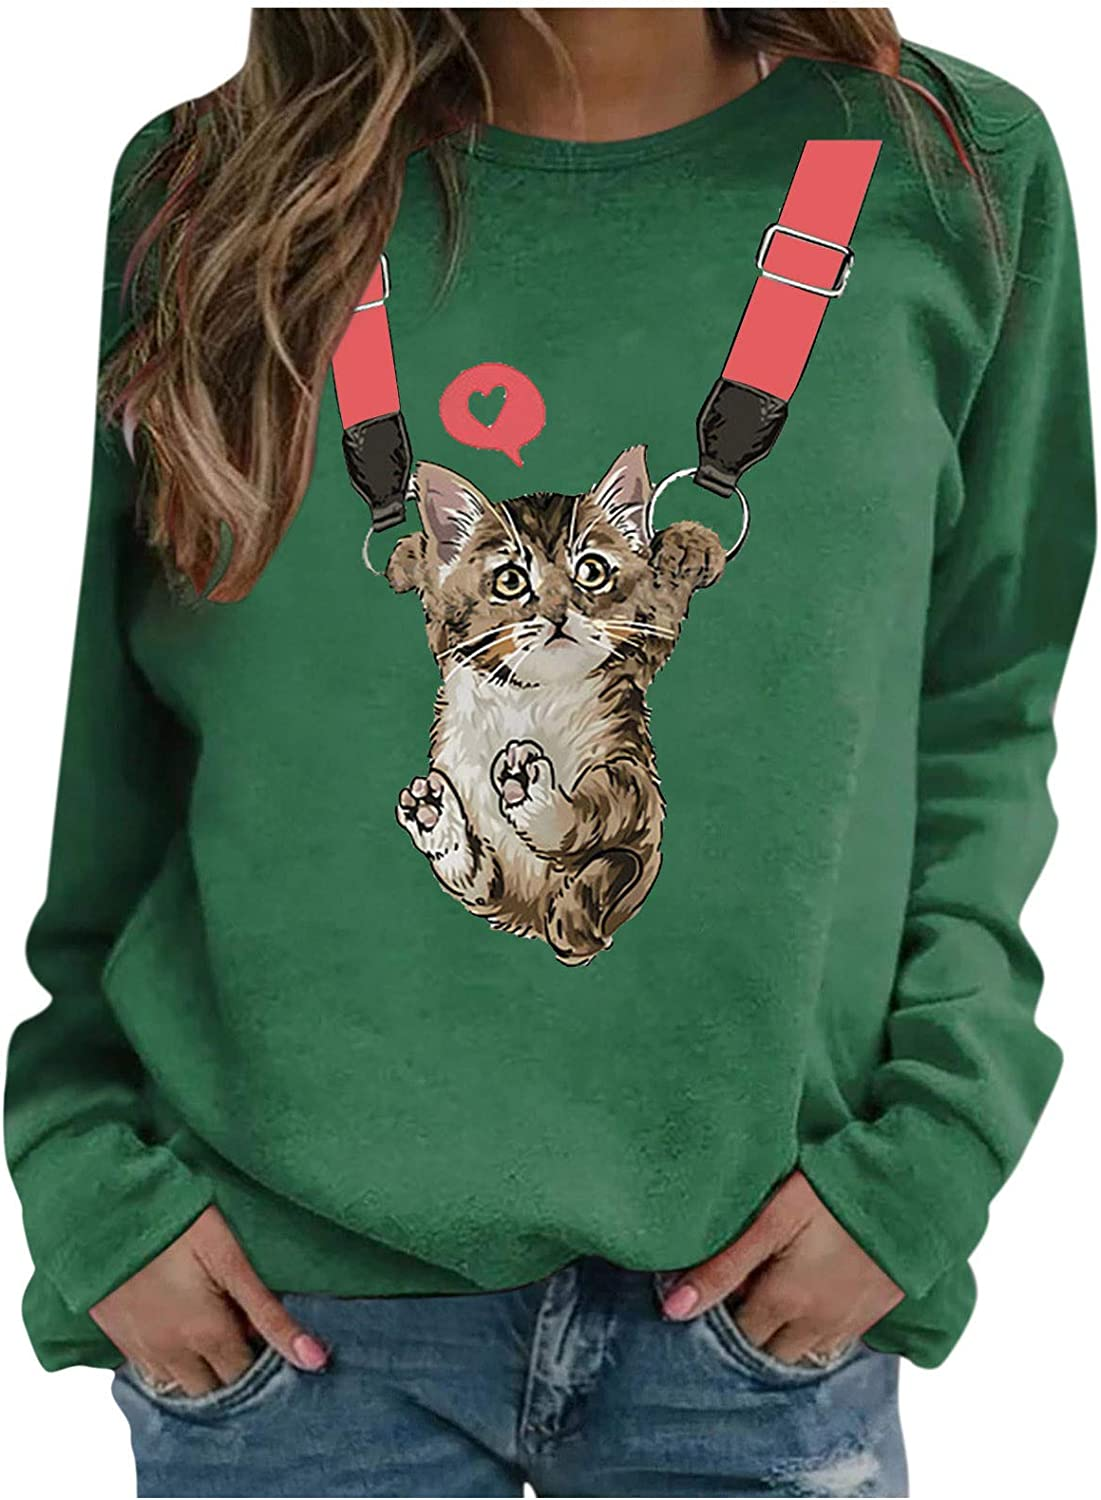 Animal Sweatshirt for Women Cute excellence Little S Direct store Pattern Pullover Cat T